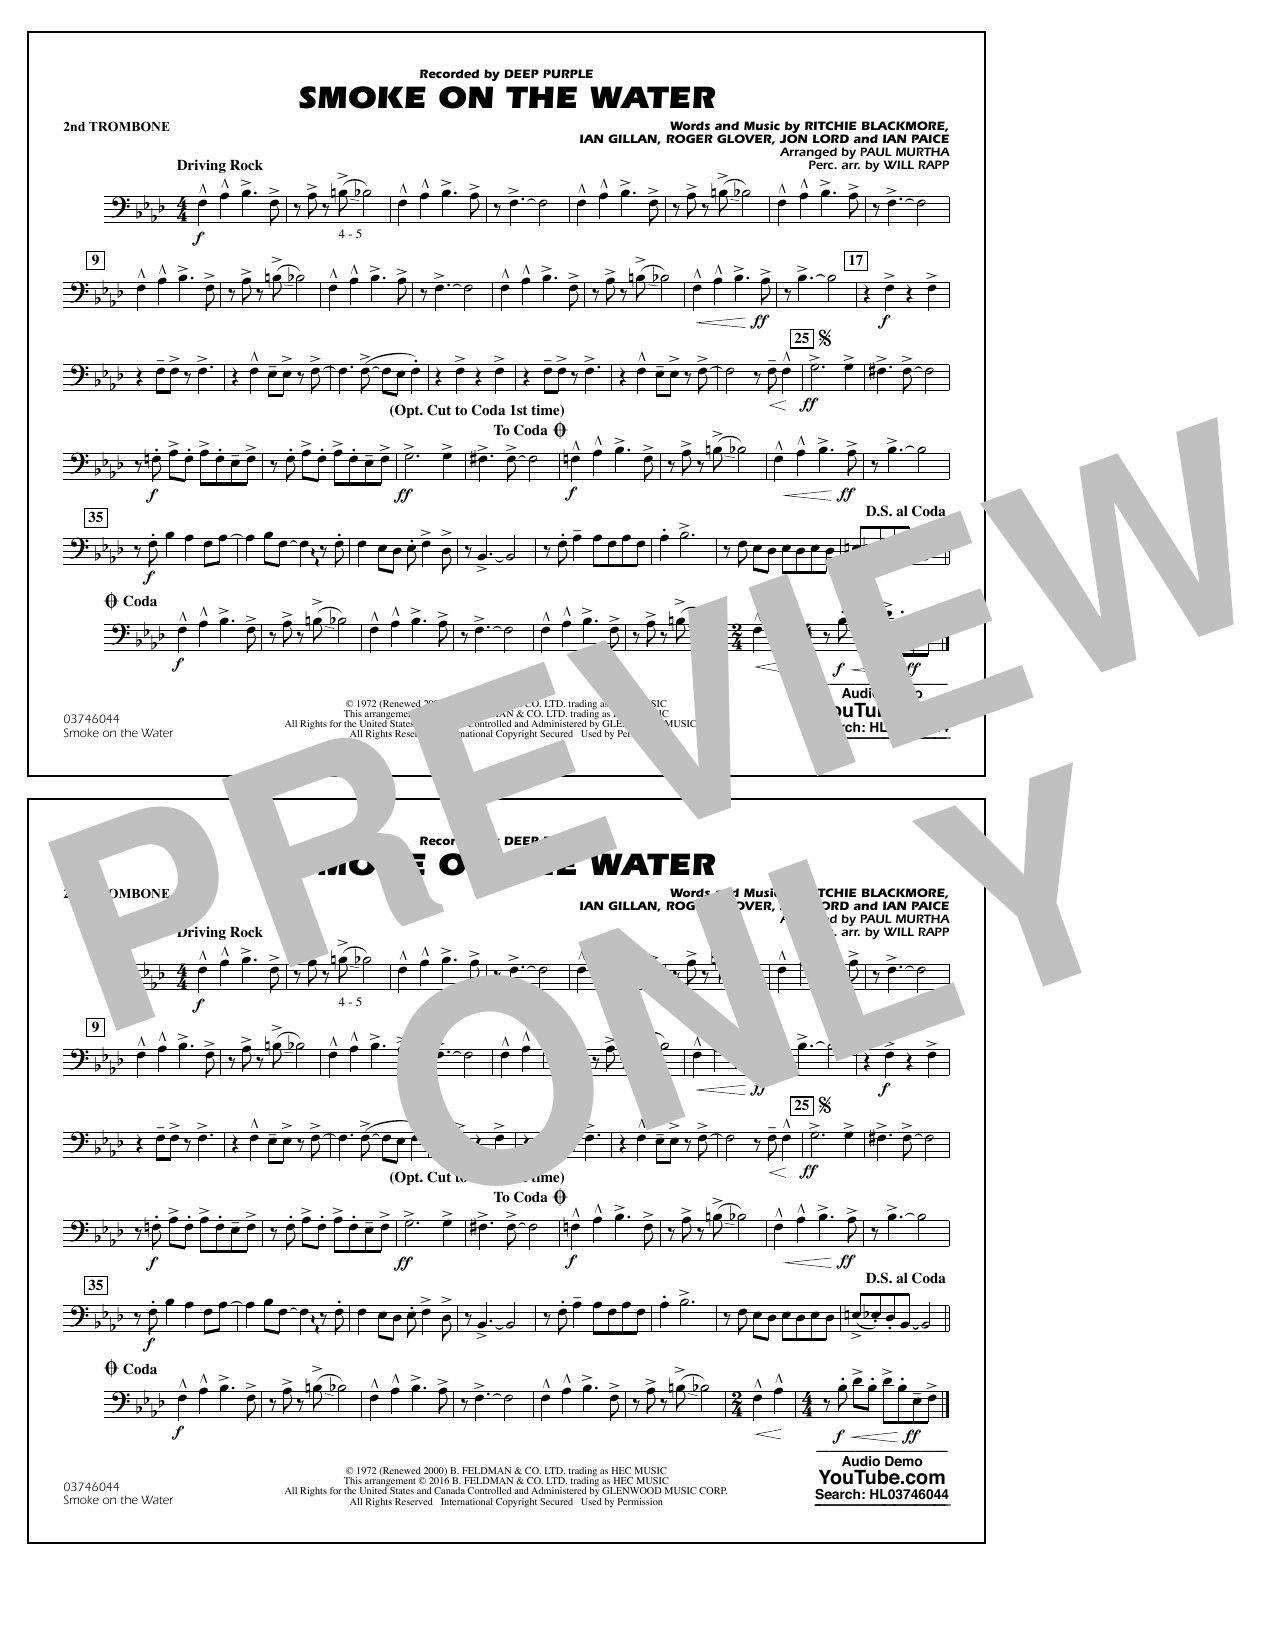 Paul Murtha Smoke on the Water - 2nd Trombone sheet music notes and chords. Download Printable PDF.